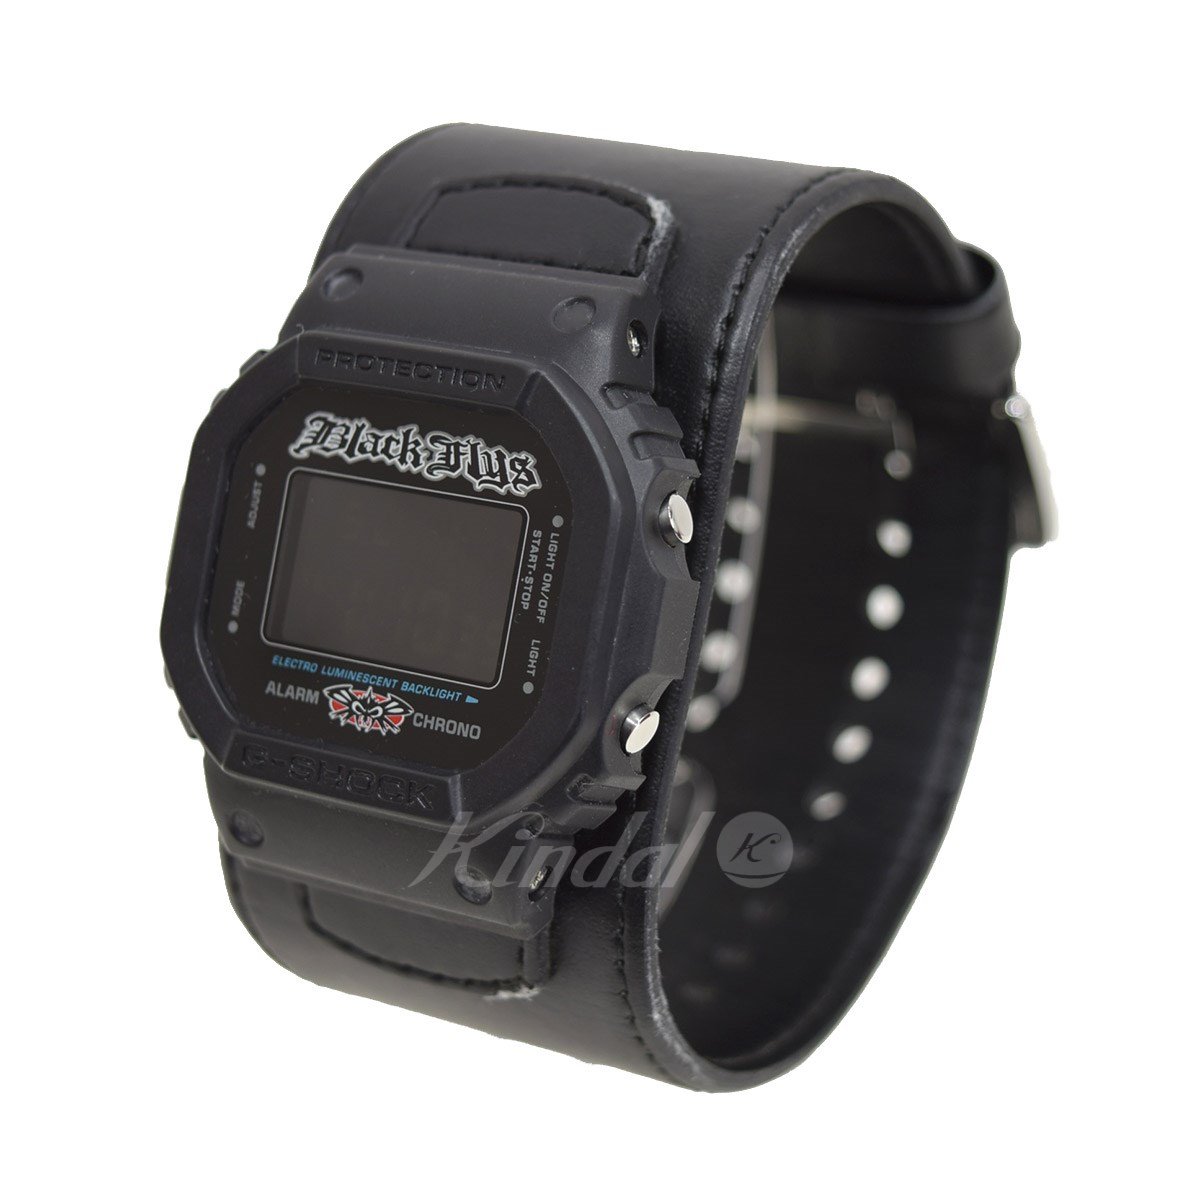 腕時計, メンズ腕時計 CASIO BlackFlys G-SHOCK DW-5600VTBFLY - 150118